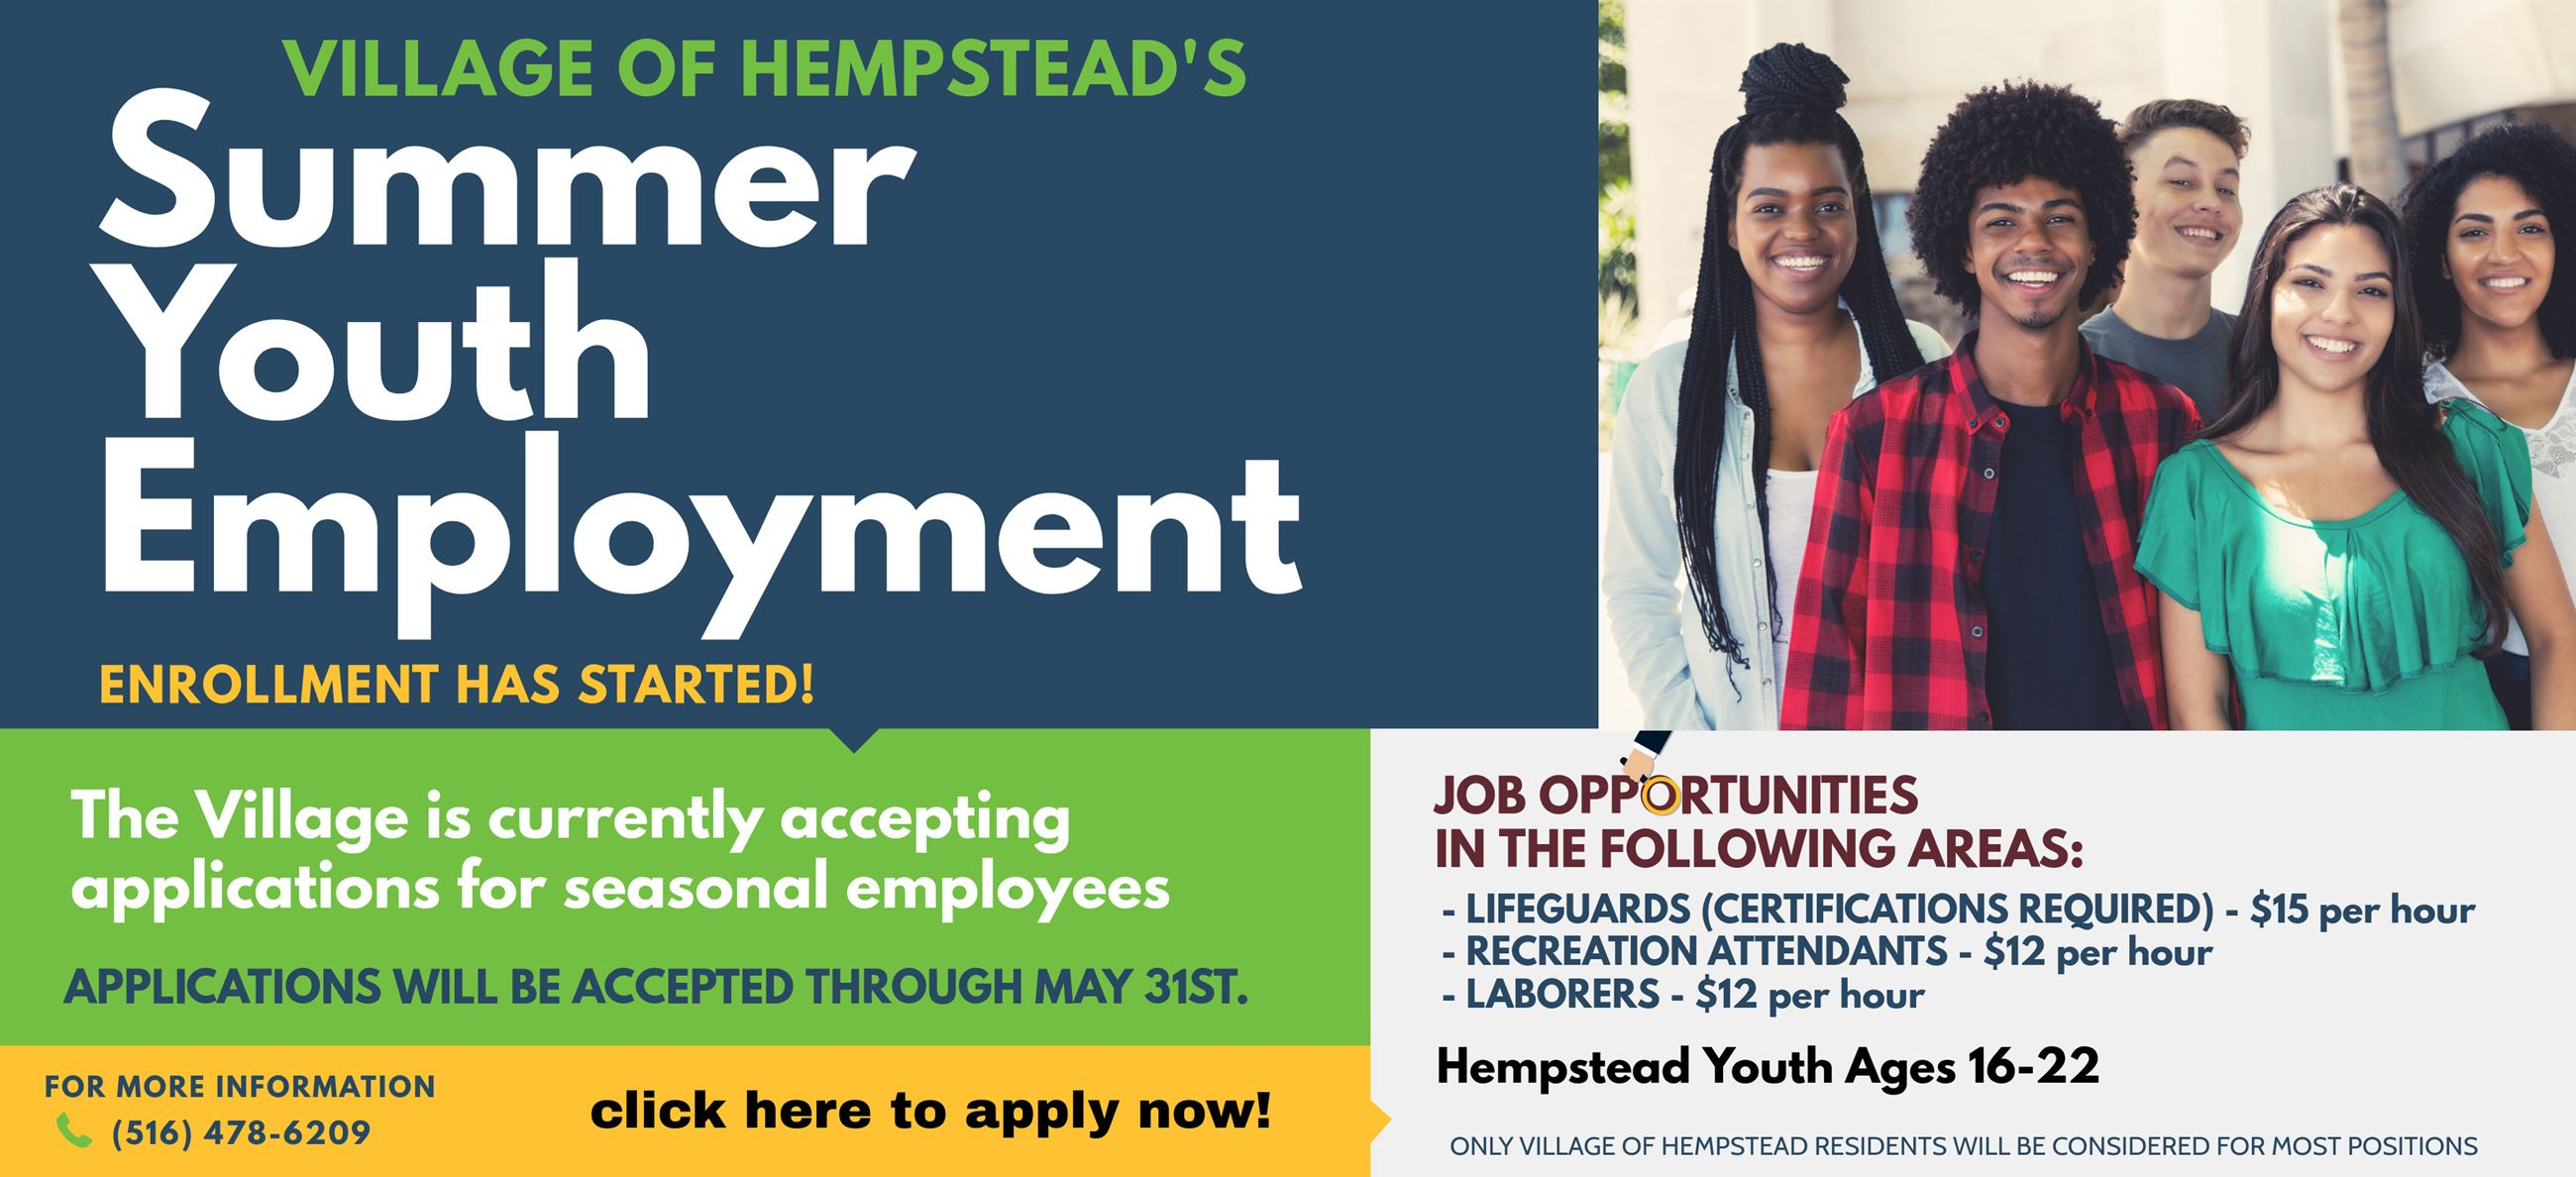 Summer Youth Employment 2019 WEB BANNER